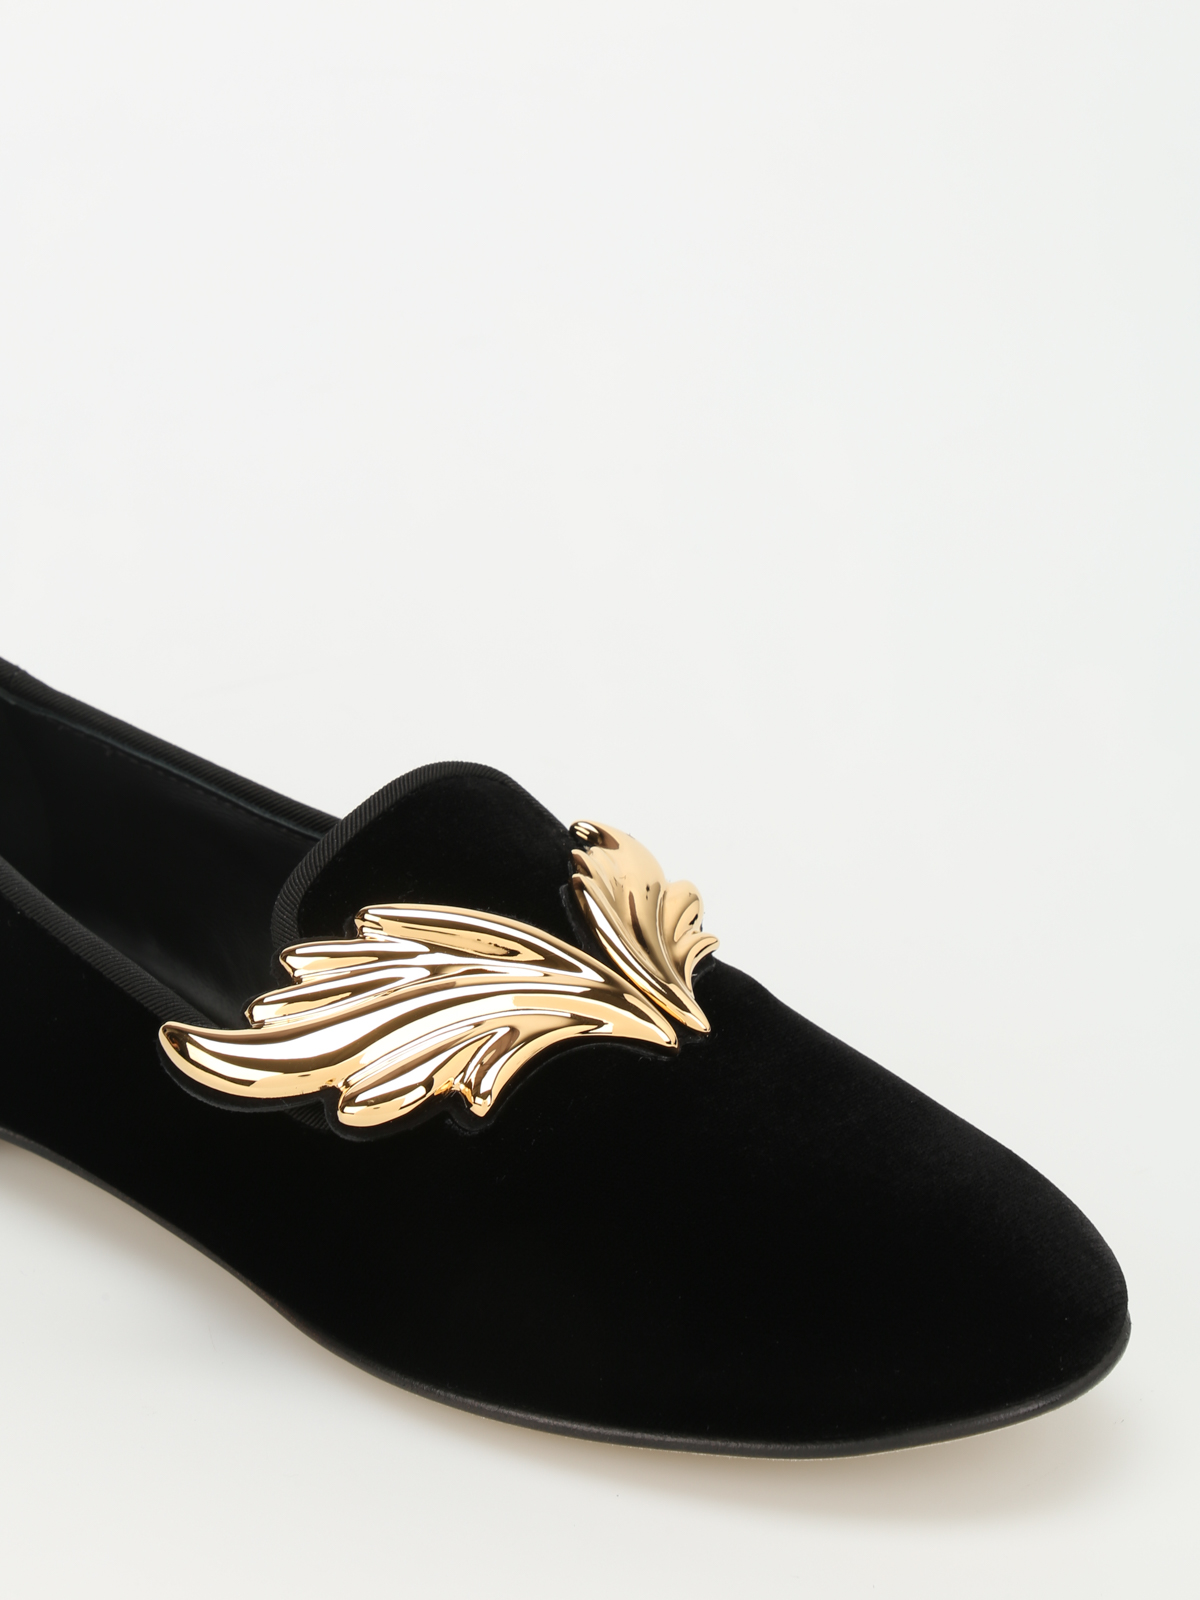 Read more Black Velvet Dalila Loafers